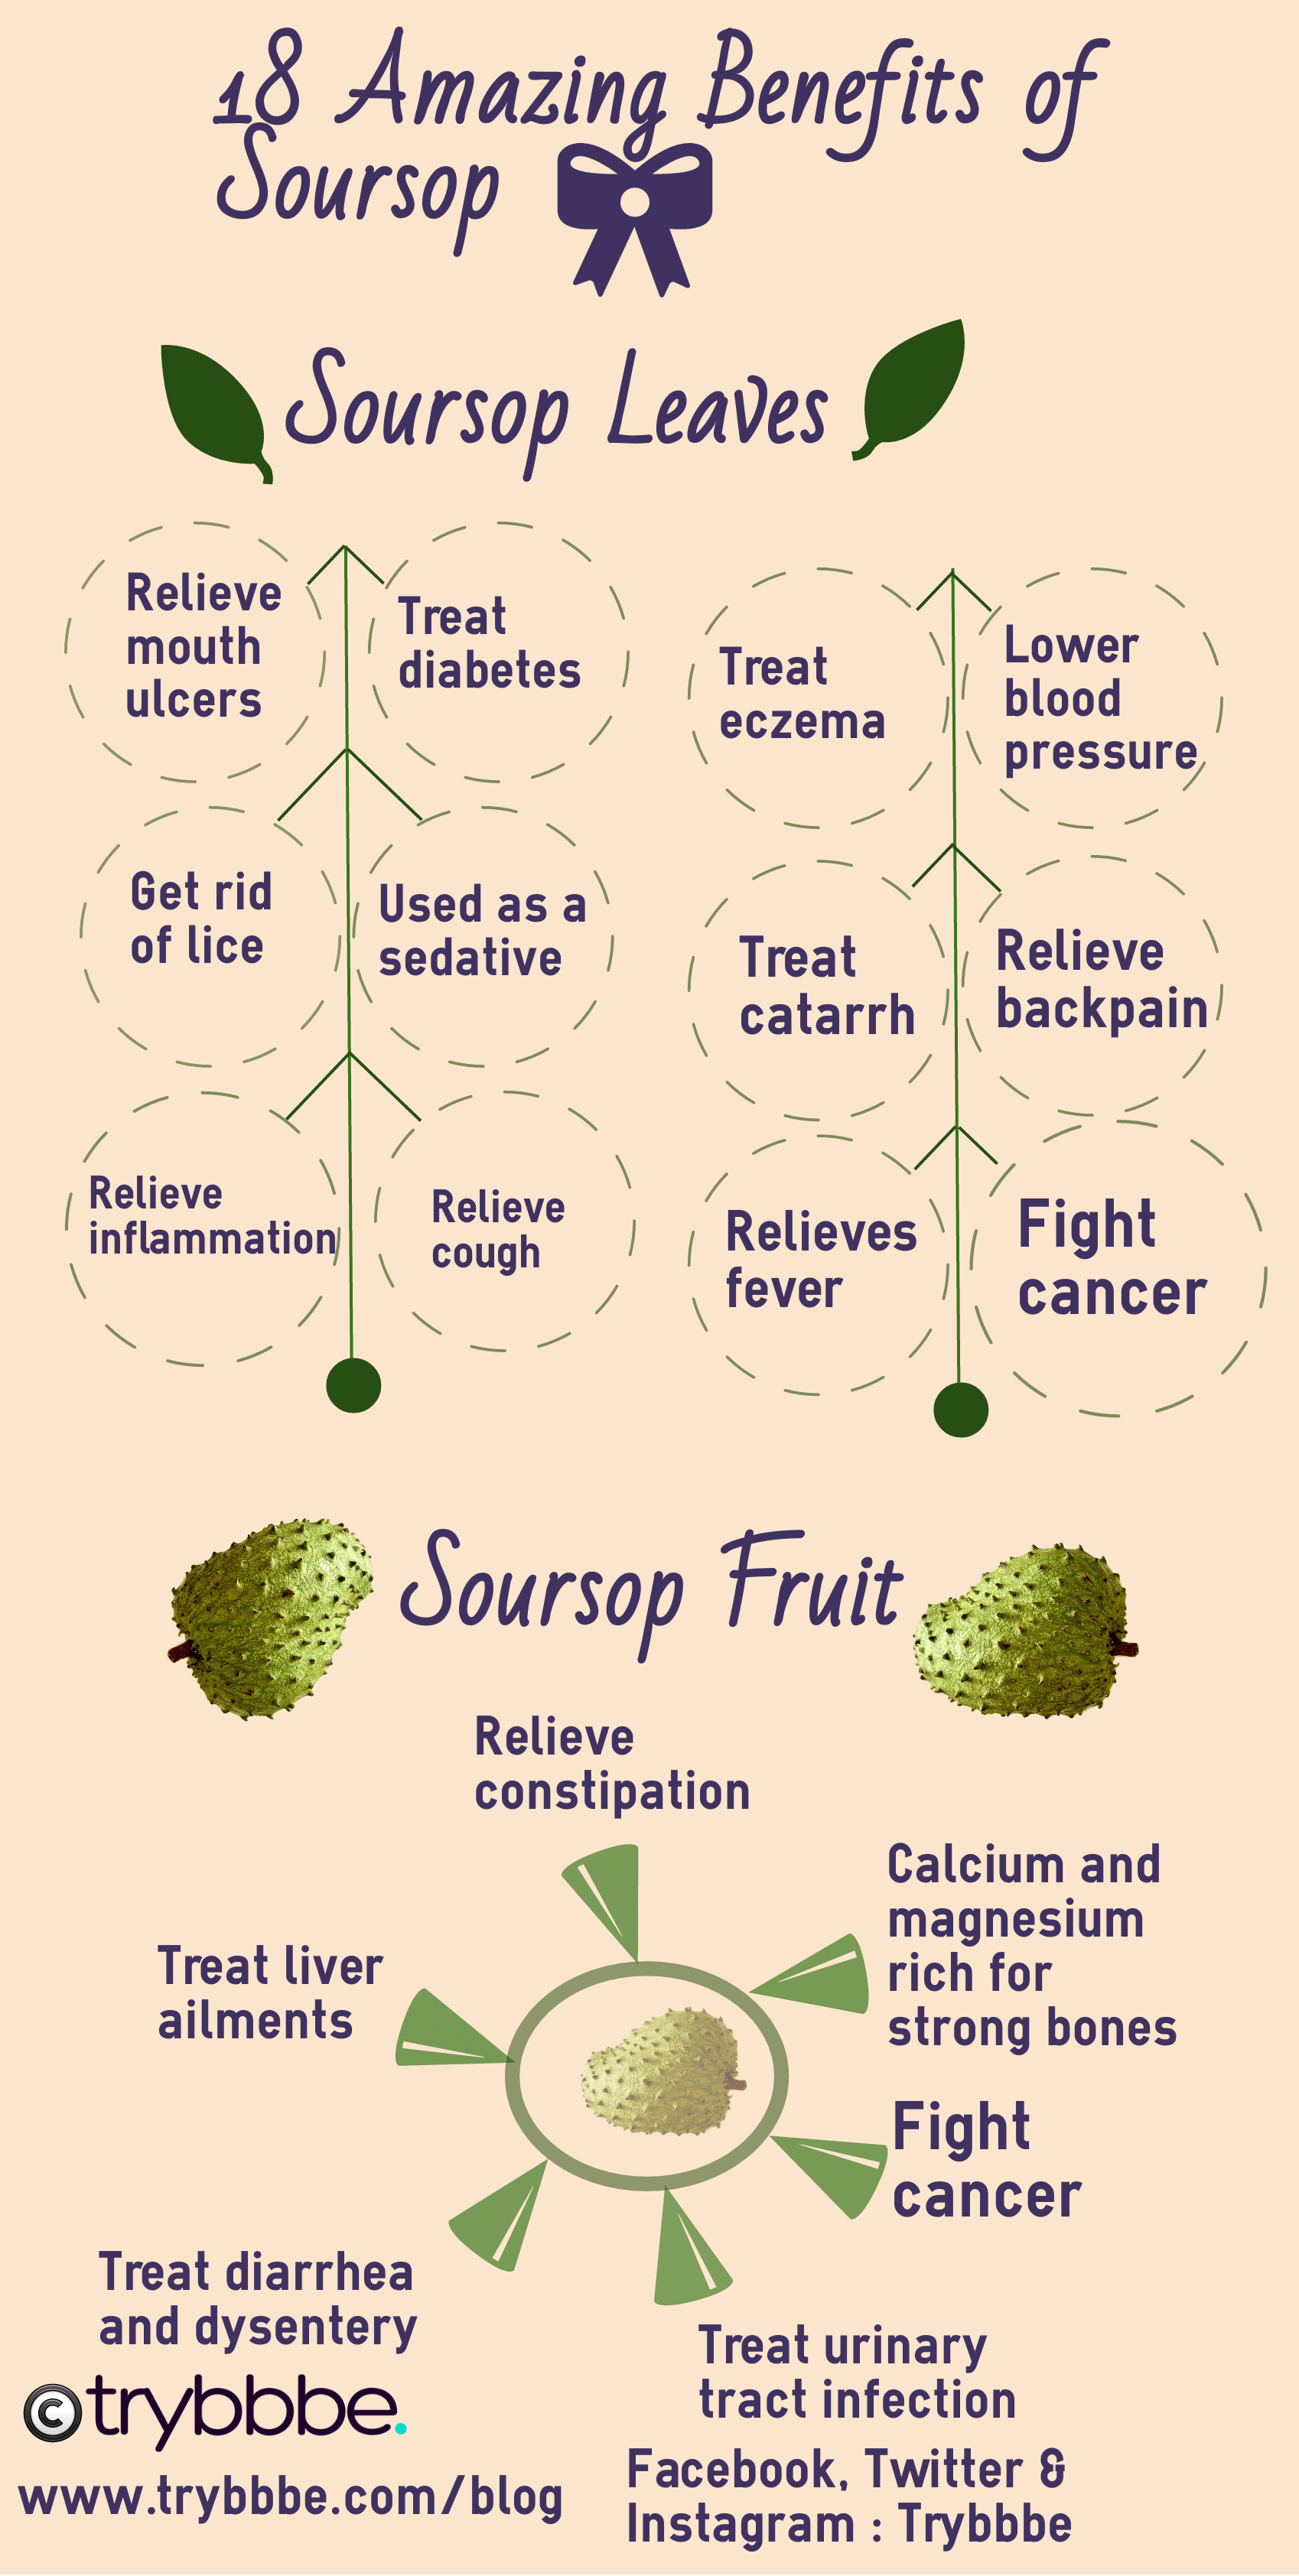 health benefits of soursop (with images) | soursop benefits